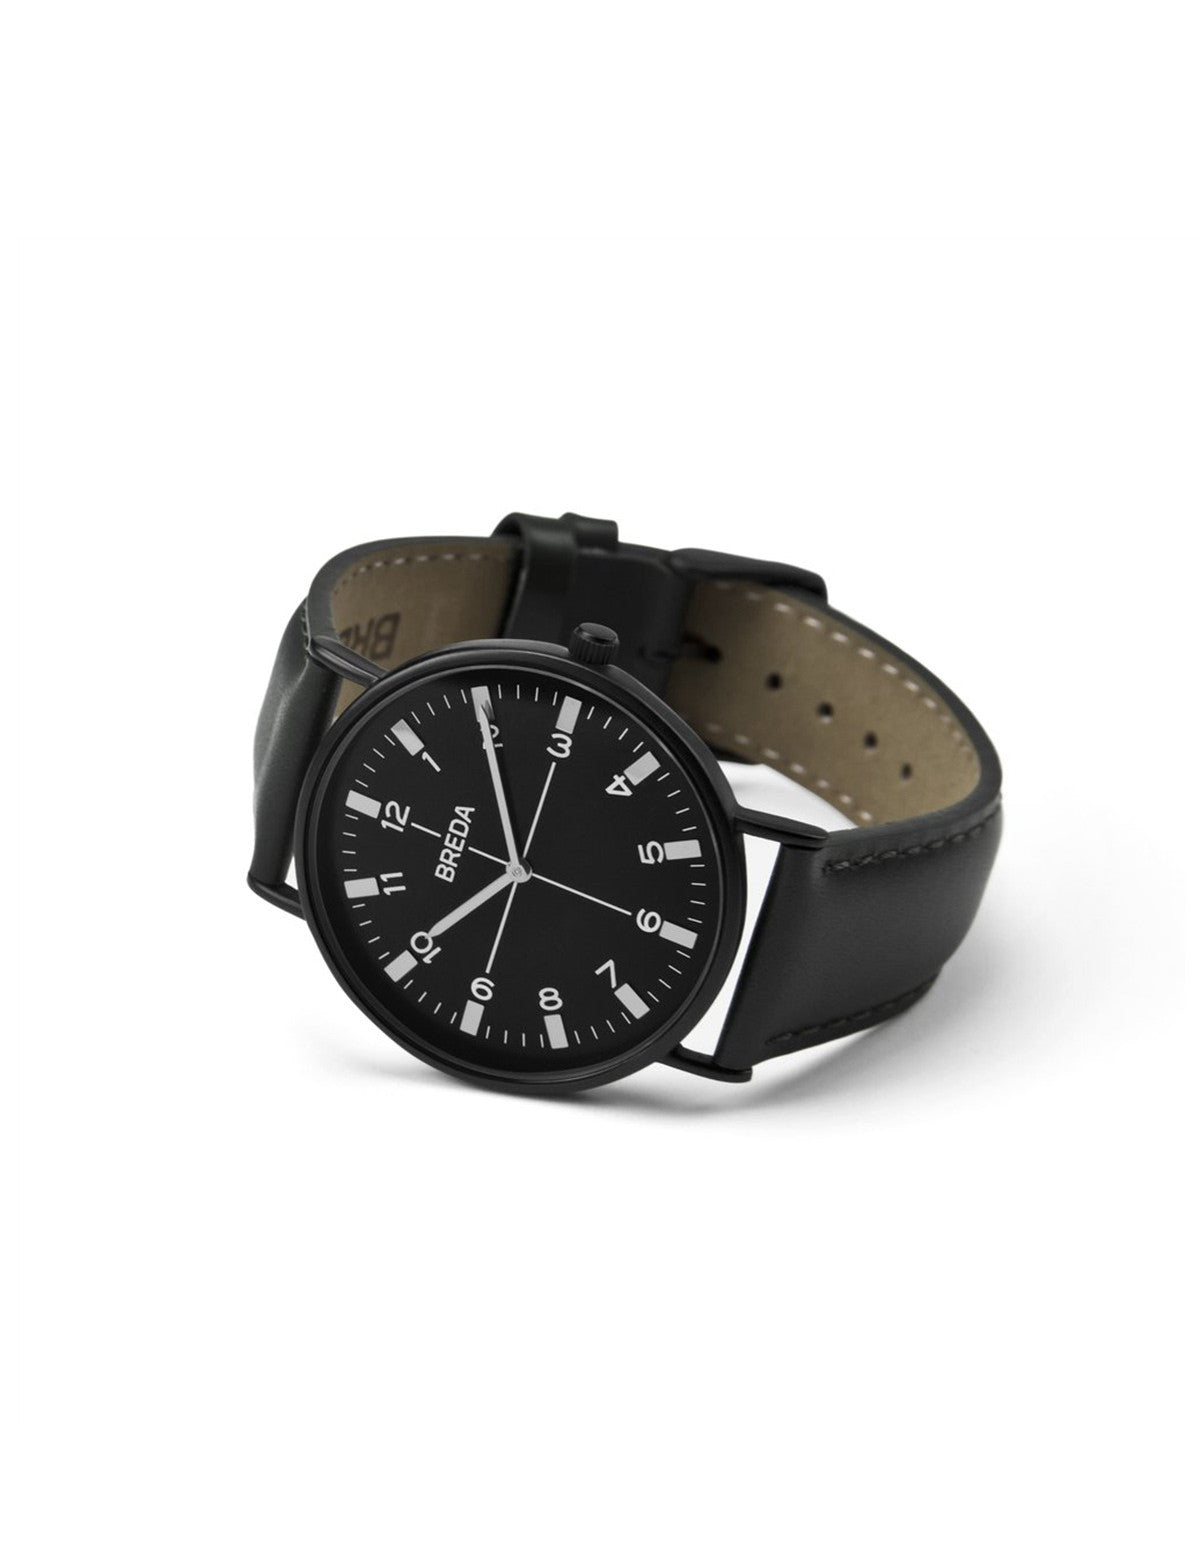 Breda Belmont Watch Black Black - Still Life - 3